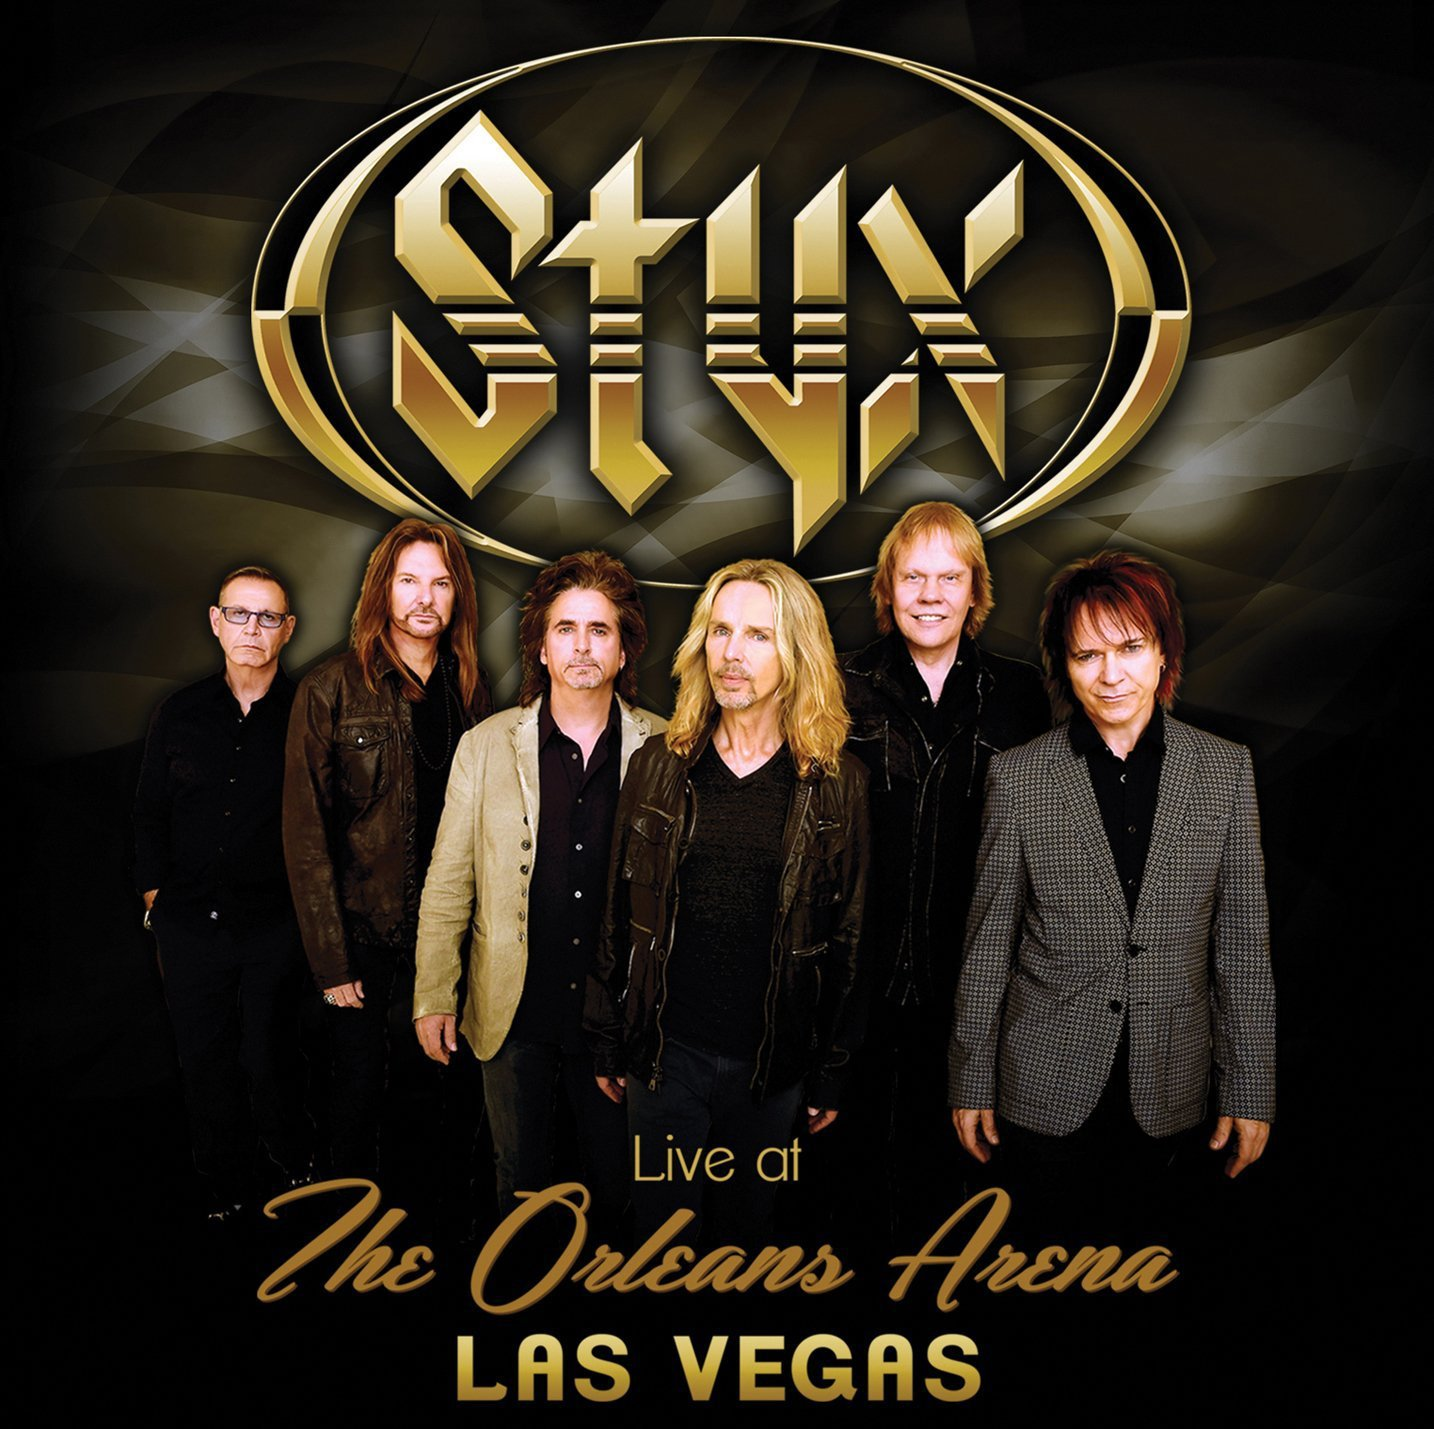 STYX Live At The Orleans Arena, Las Vegas